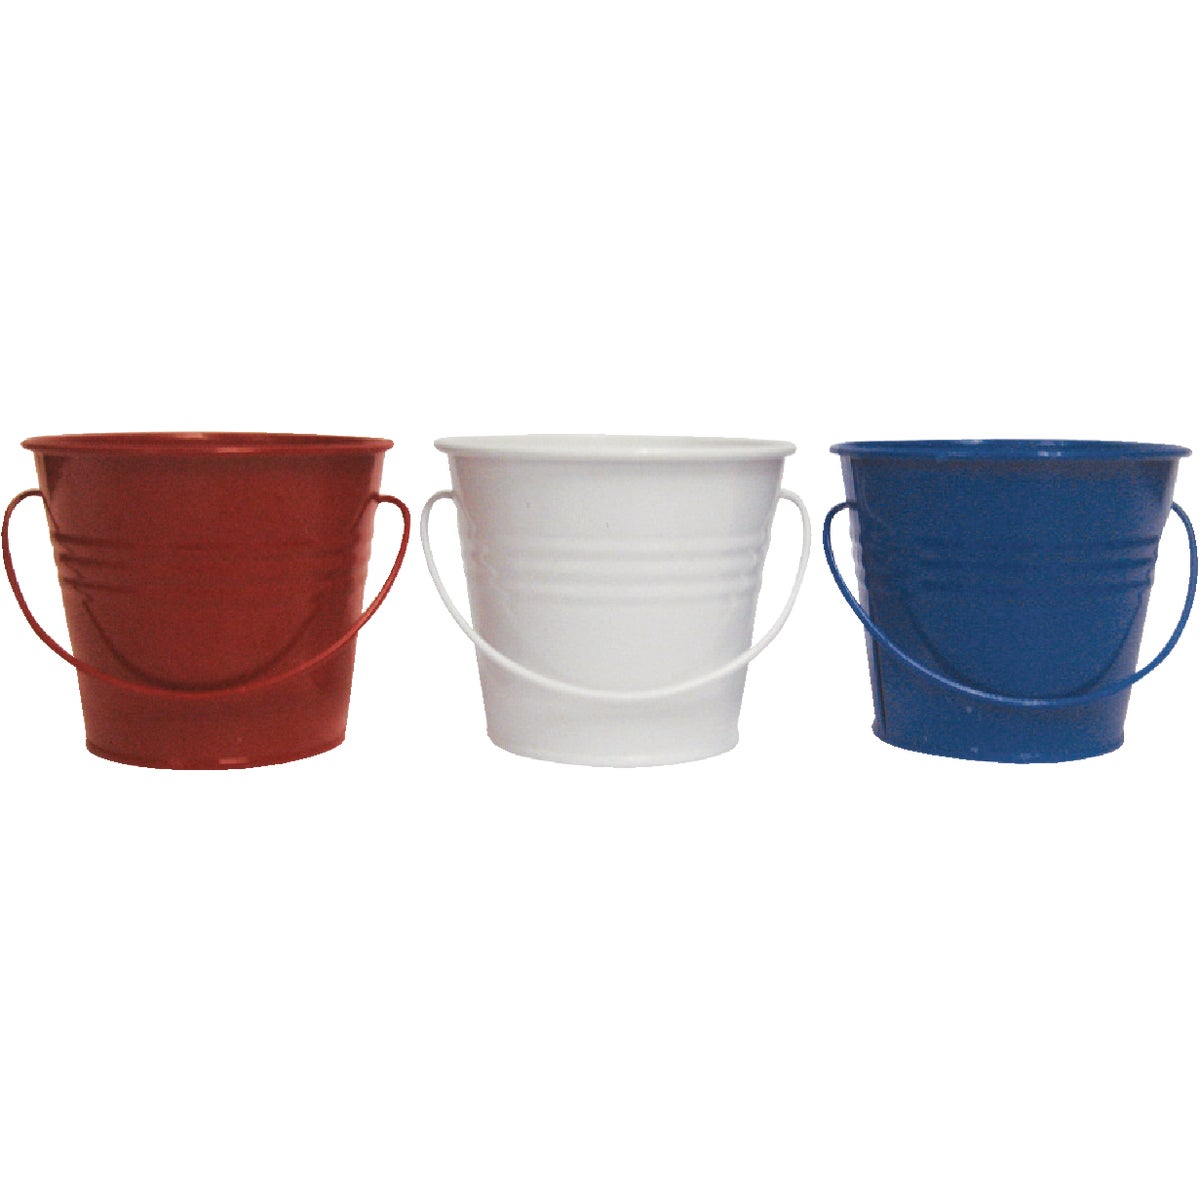 3PK MINI CITRO BUCKET - 1412121 by Lamplight Farms